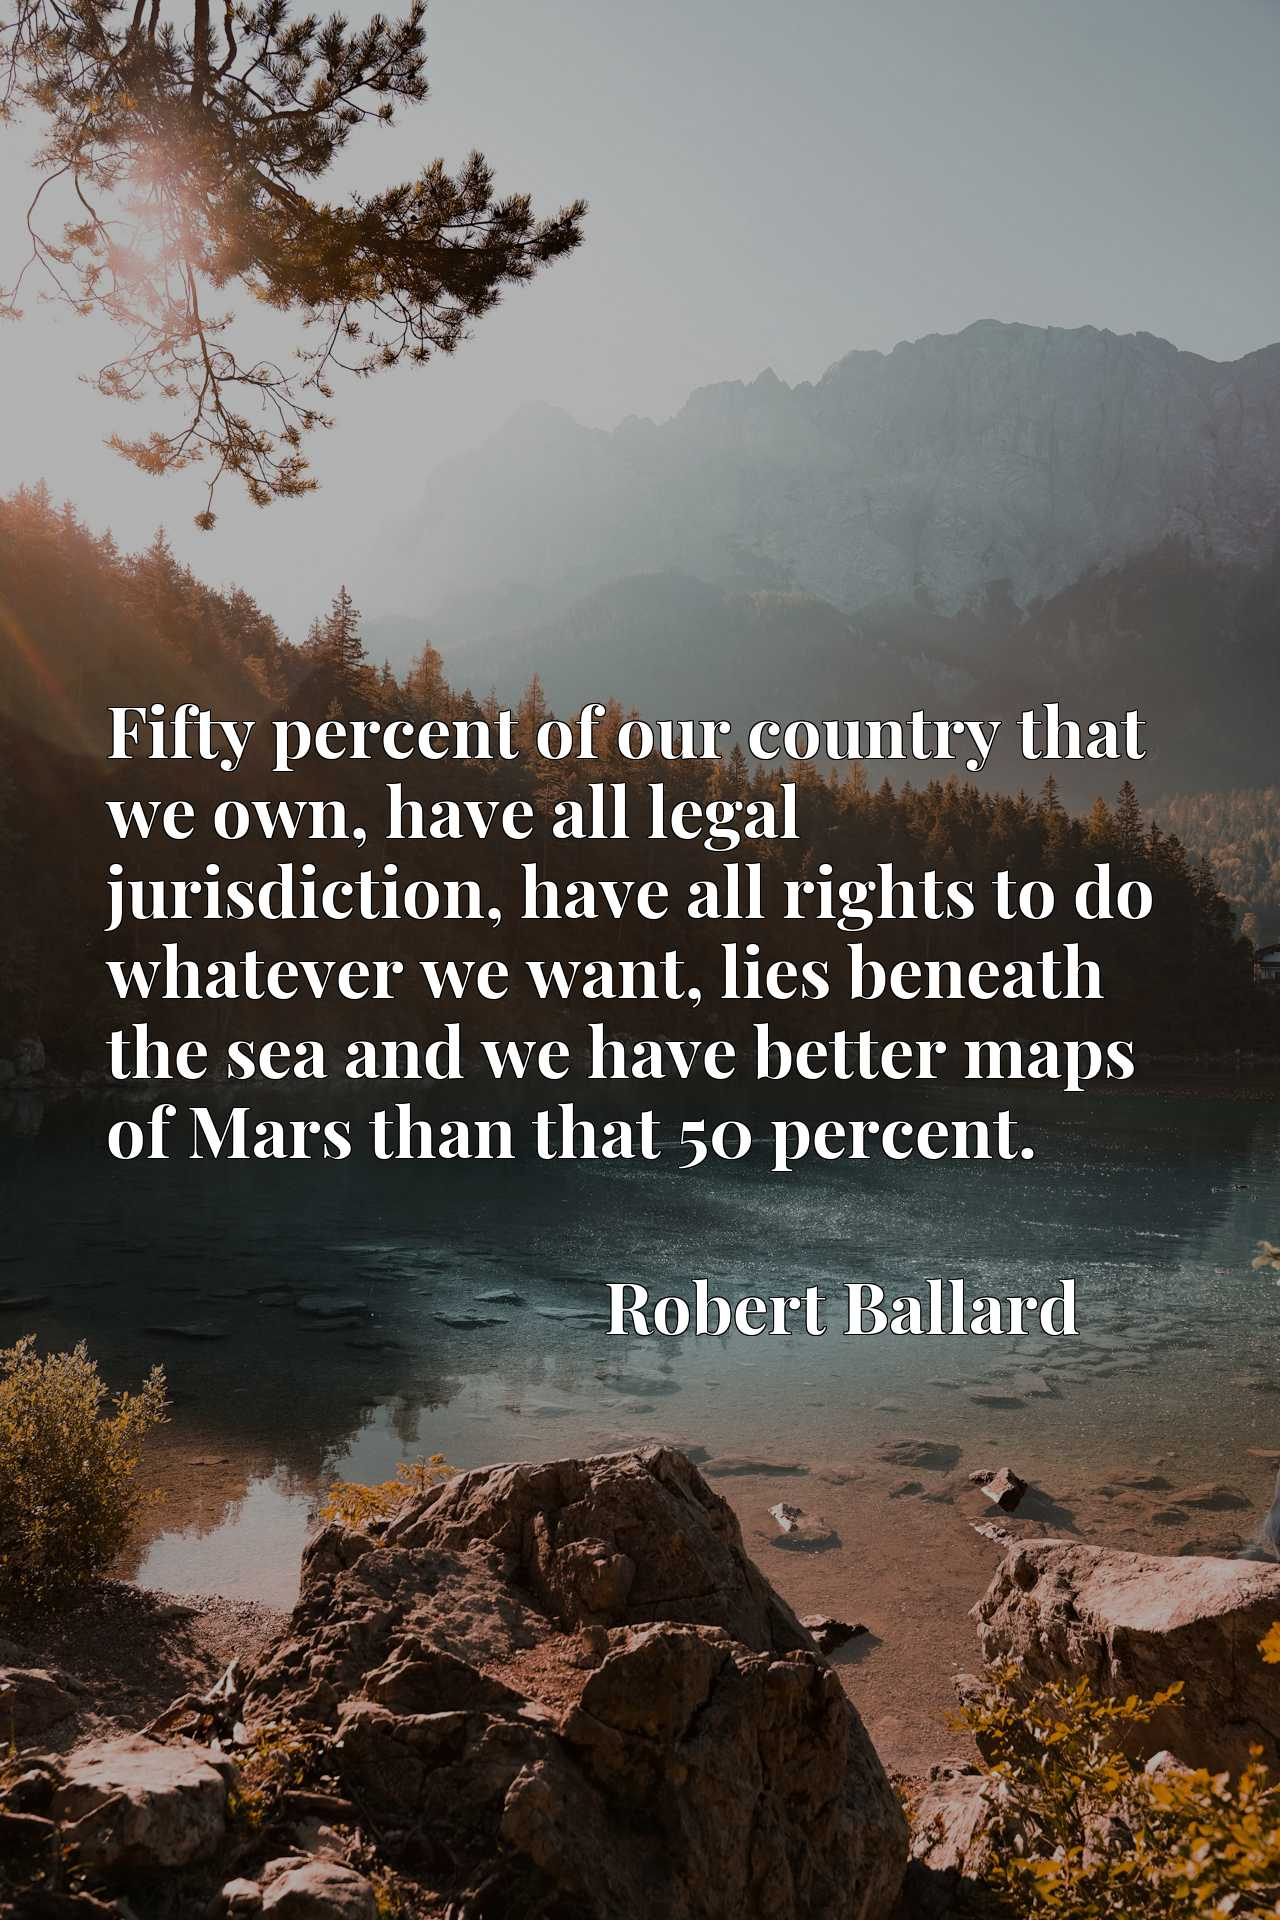 Quote Picture :Fifty percent of our country that we own, have all legal jurisdiction, have all rights to do whatever we want, lies beneath the sea and we have better maps of Mars than that 50 percent.